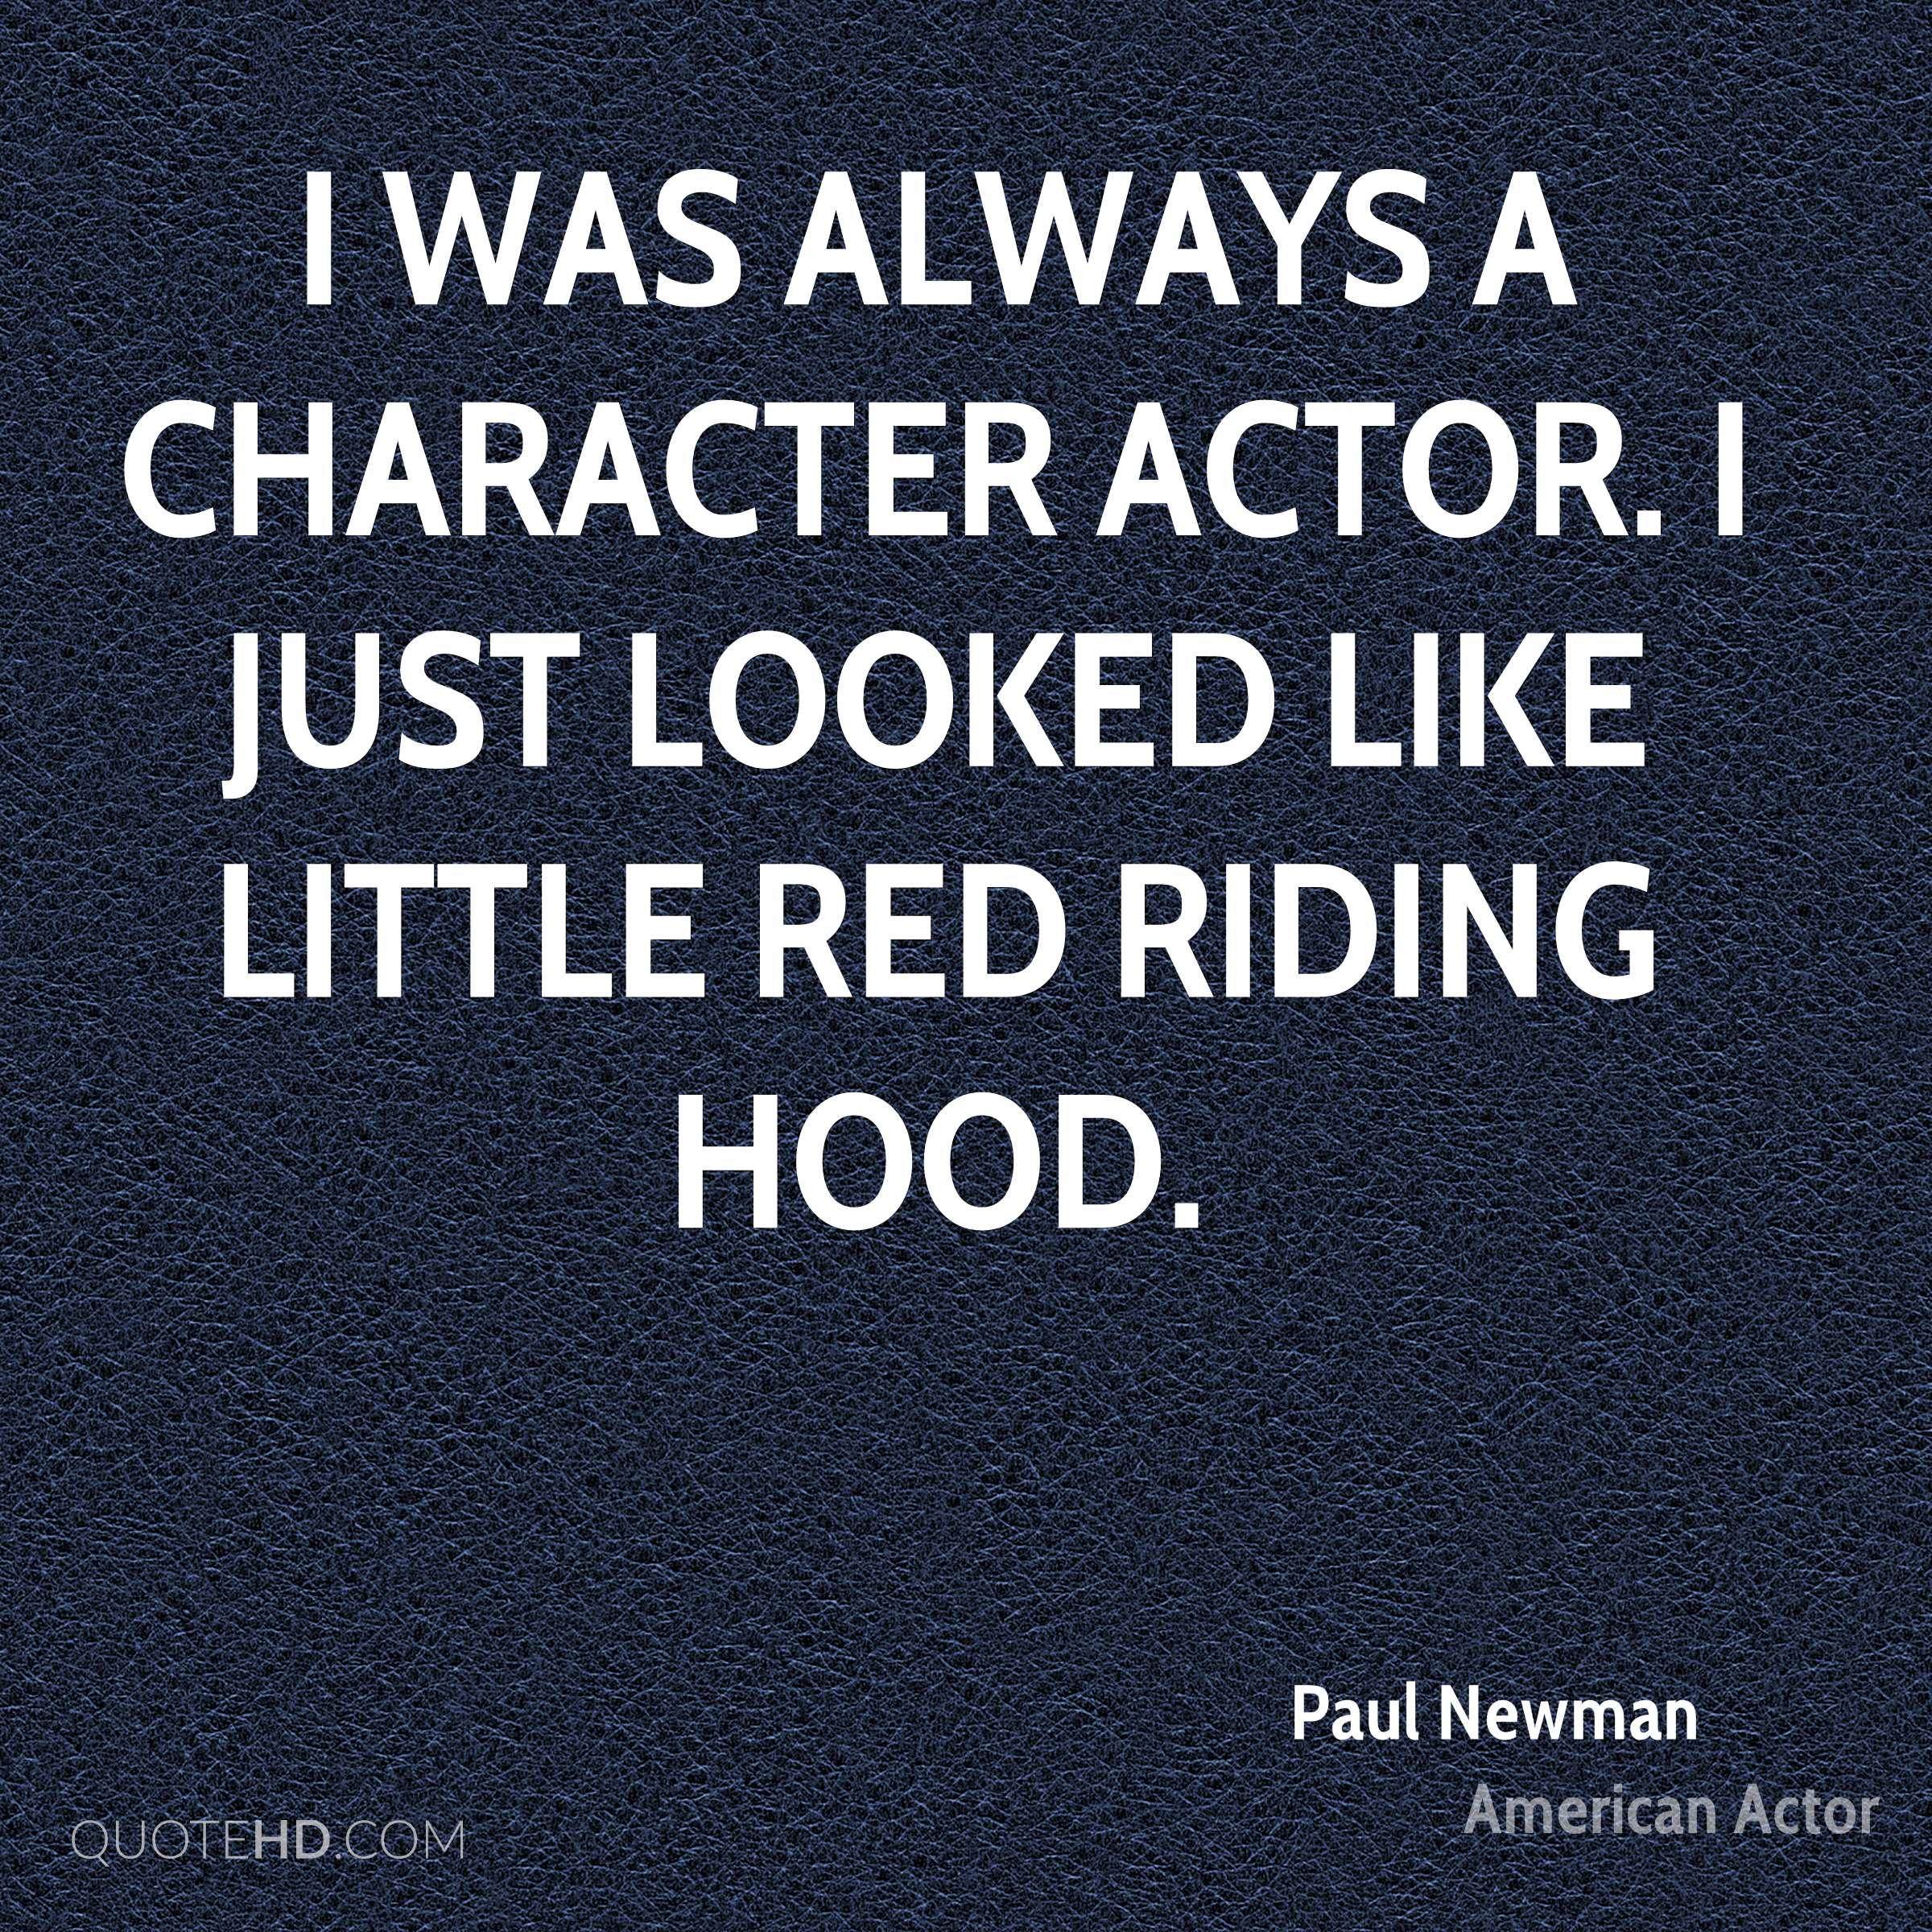 Paul Newman Quotes | QuoteHD